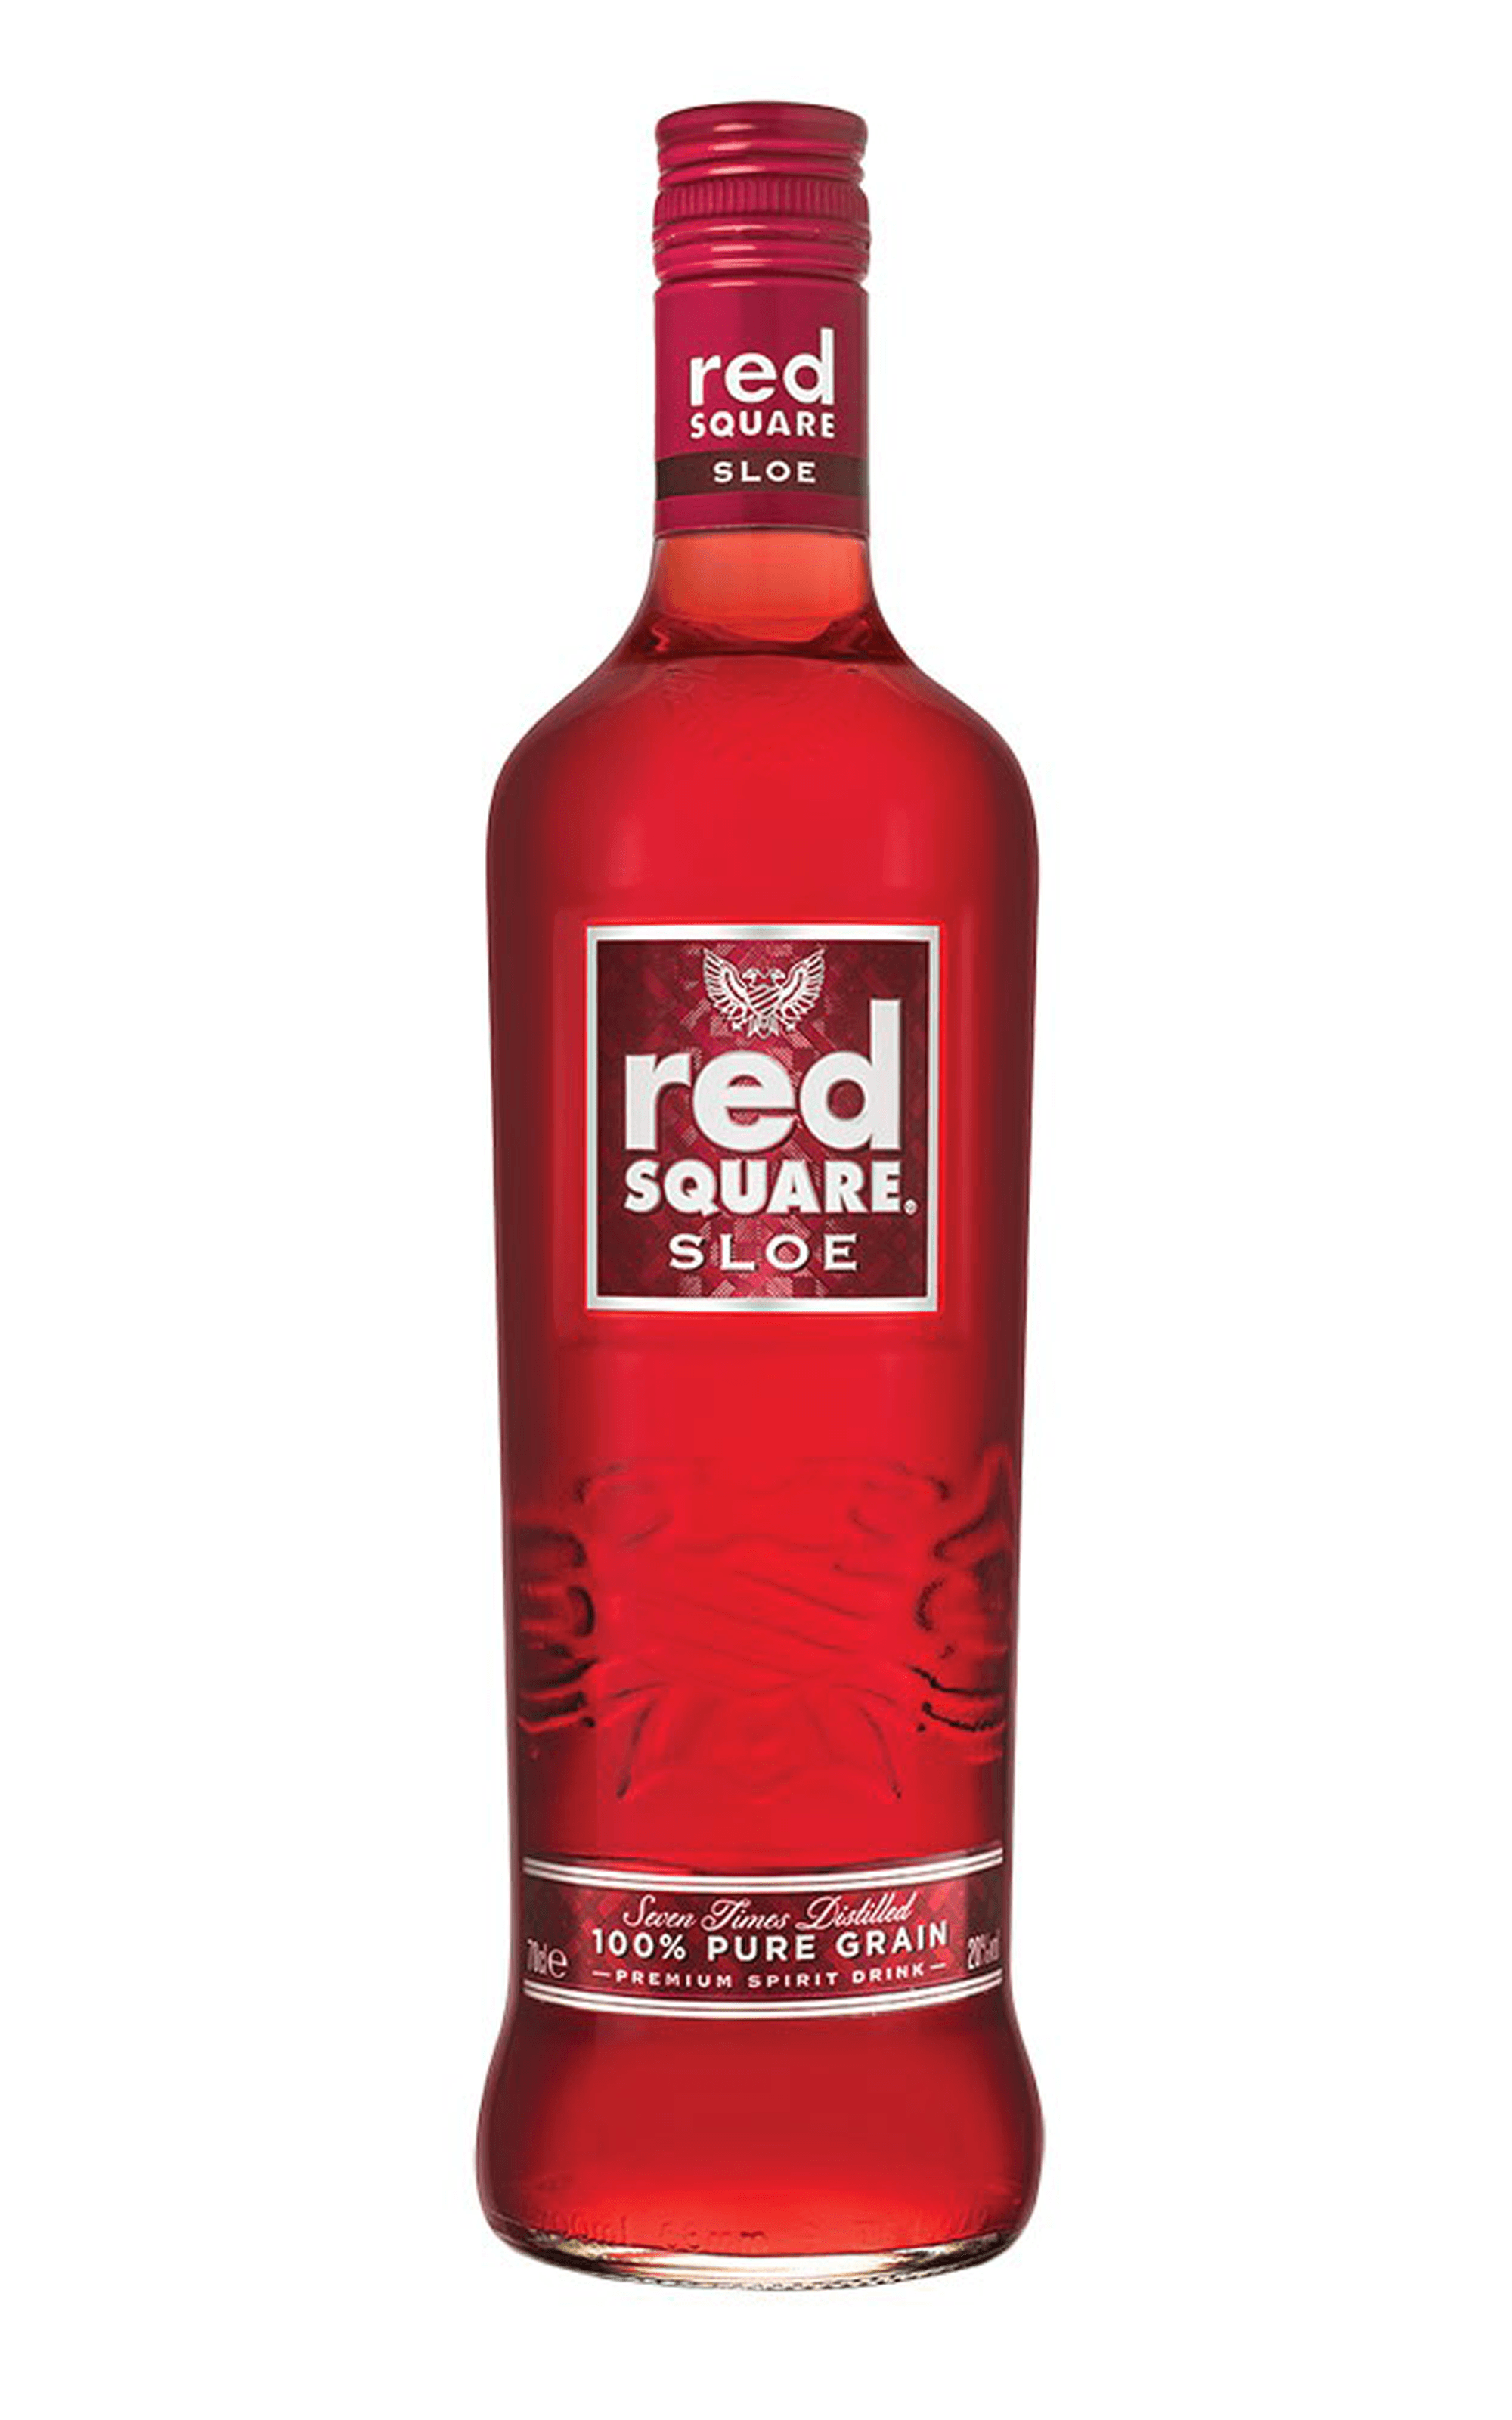 Red Square Sloe Vodka